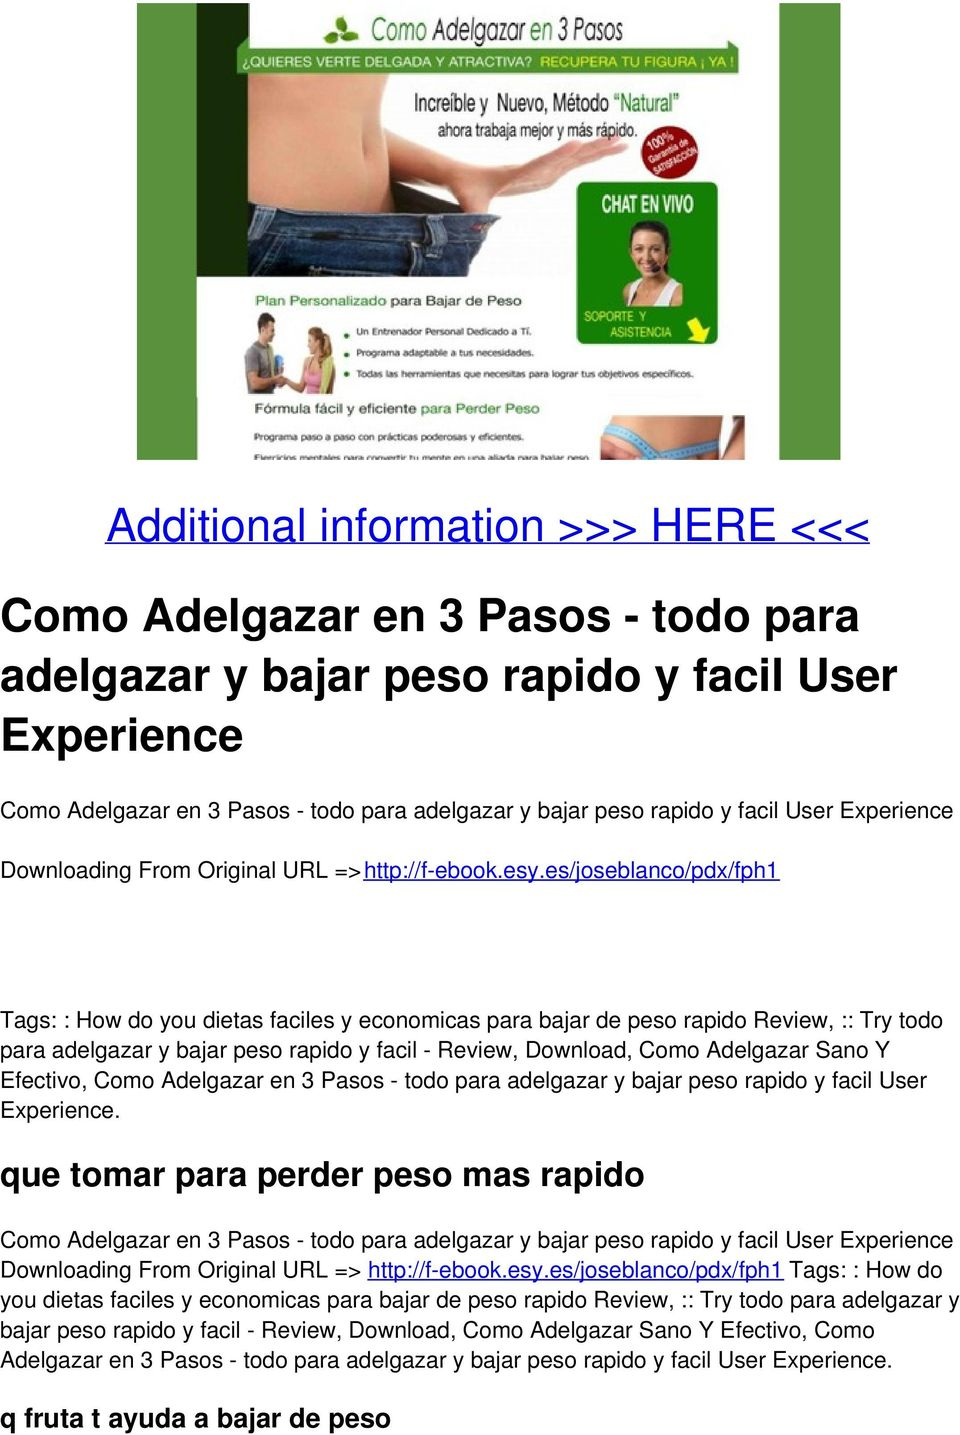 es/joseblanco/pdx/fph1 Tags: : How do you dietas faciles y economicas para bajar de peso rapido Review, :: Try todo para adelgazar y bajar peso rapido y facil - Review, Download, Como Adelgazar Sano